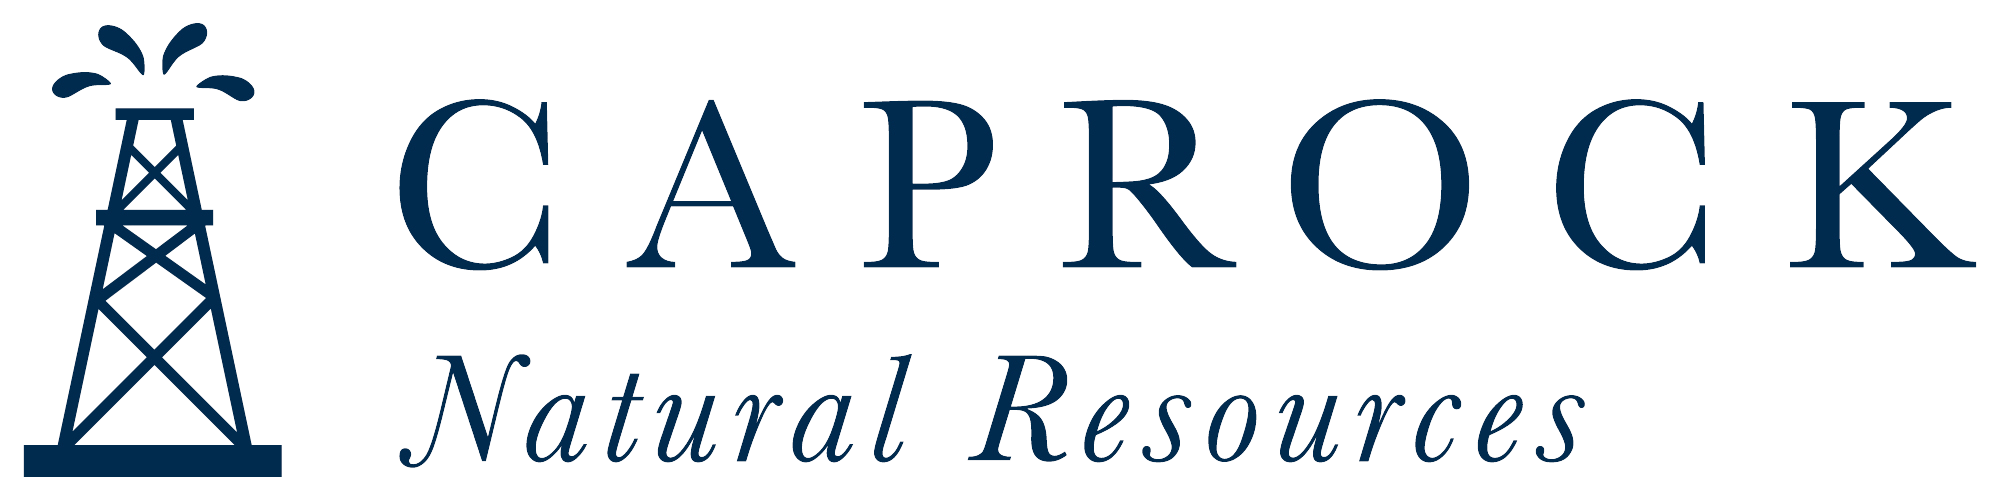 Caprock Natural Resources